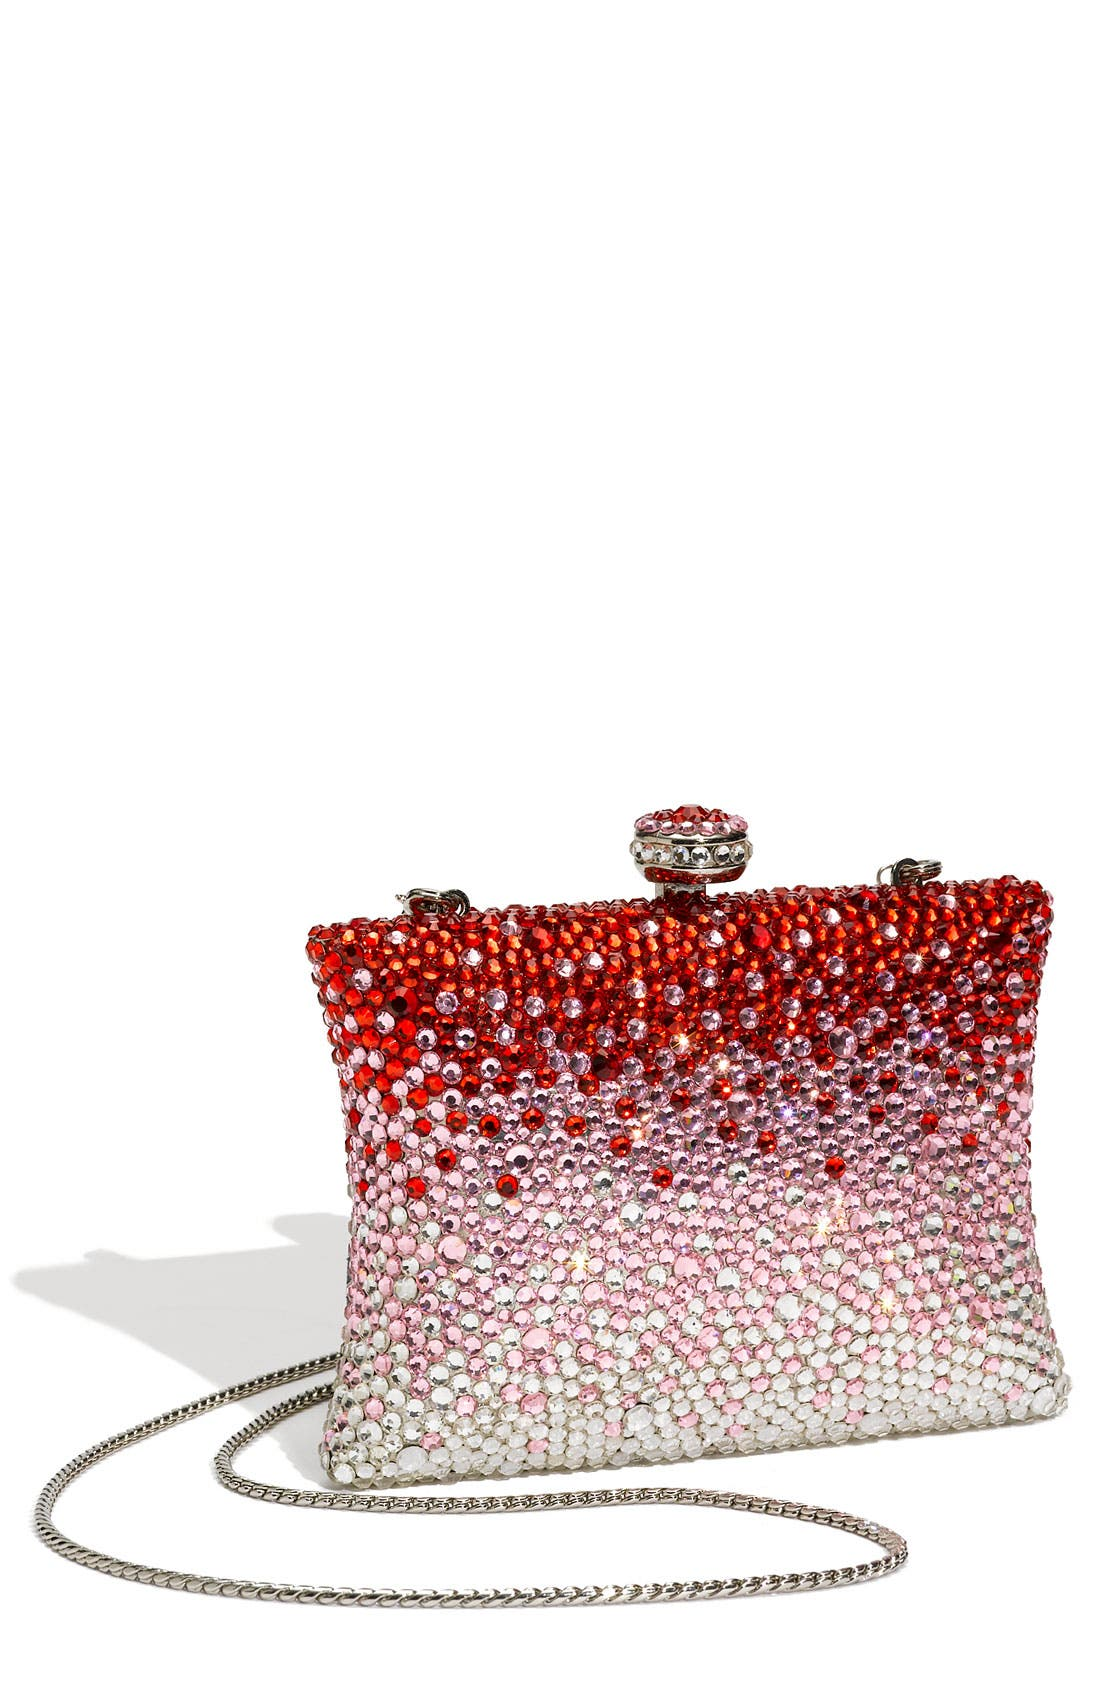 Alternate Image 1 Selected - Natasha Couture Rhinestone Clutch